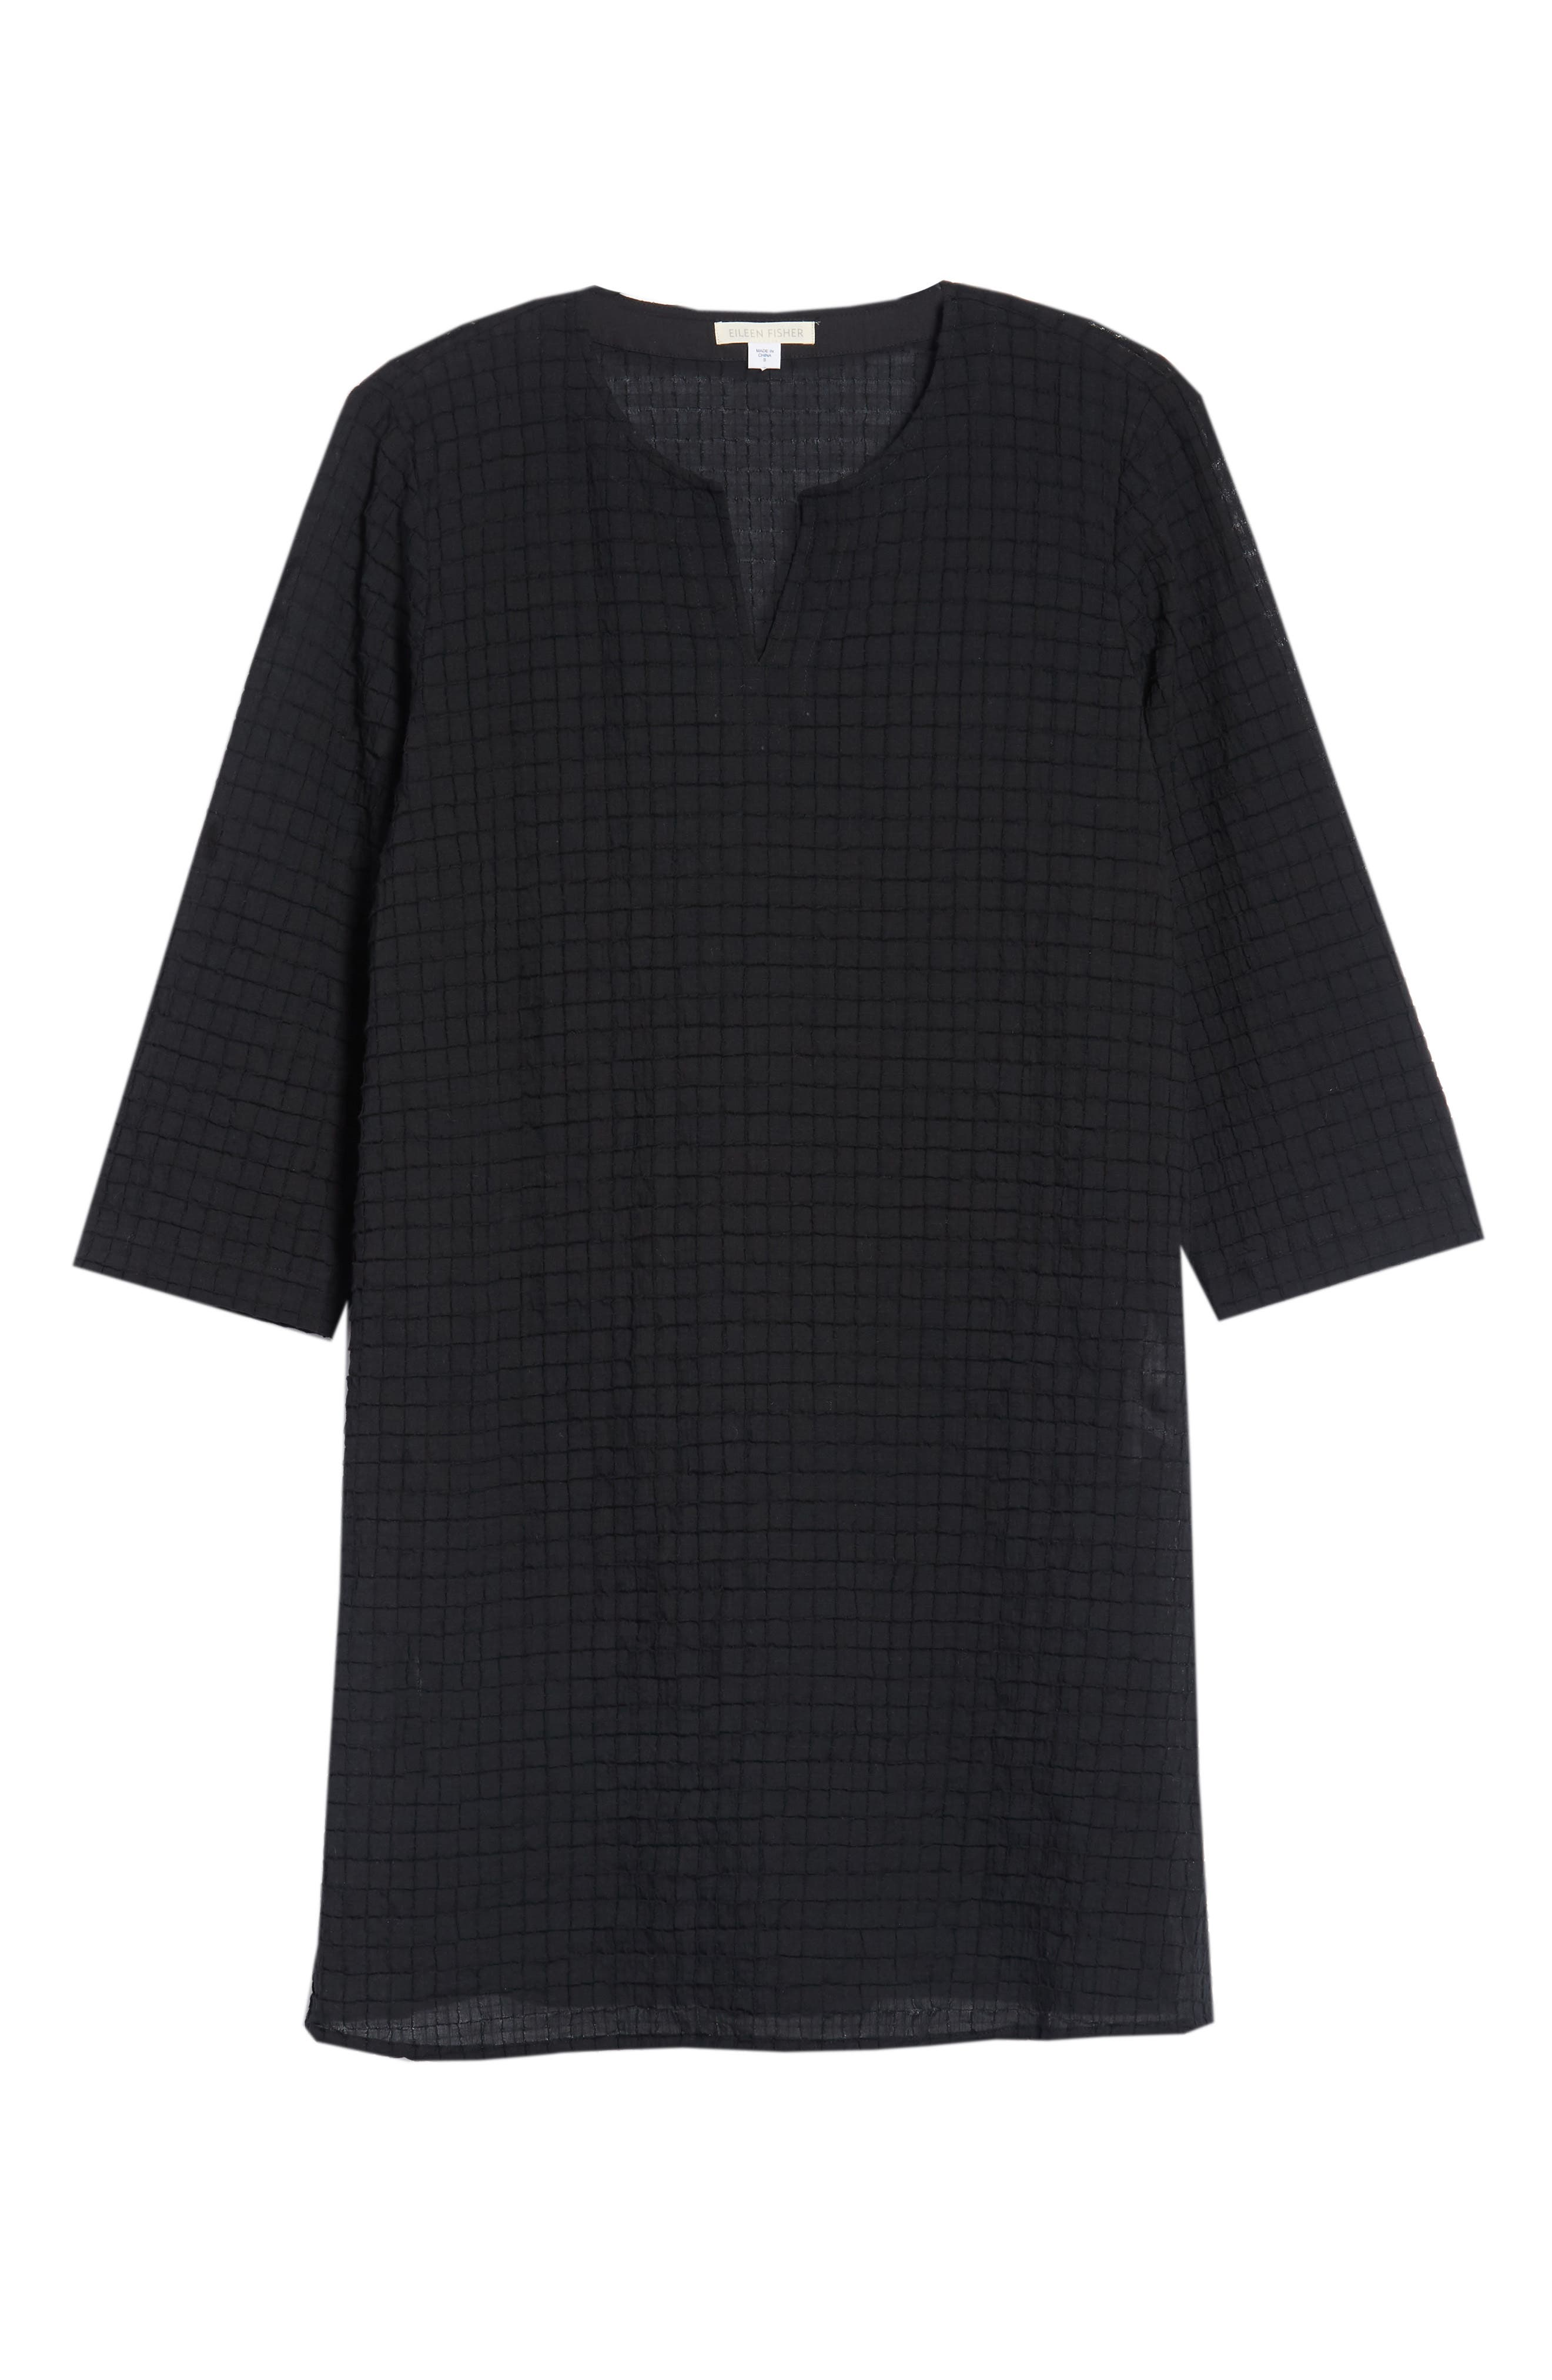 EILEEN FISHER,                             Stretch Organic Cotton Tunic,                             Alternate thumbnail 6, color,                             001